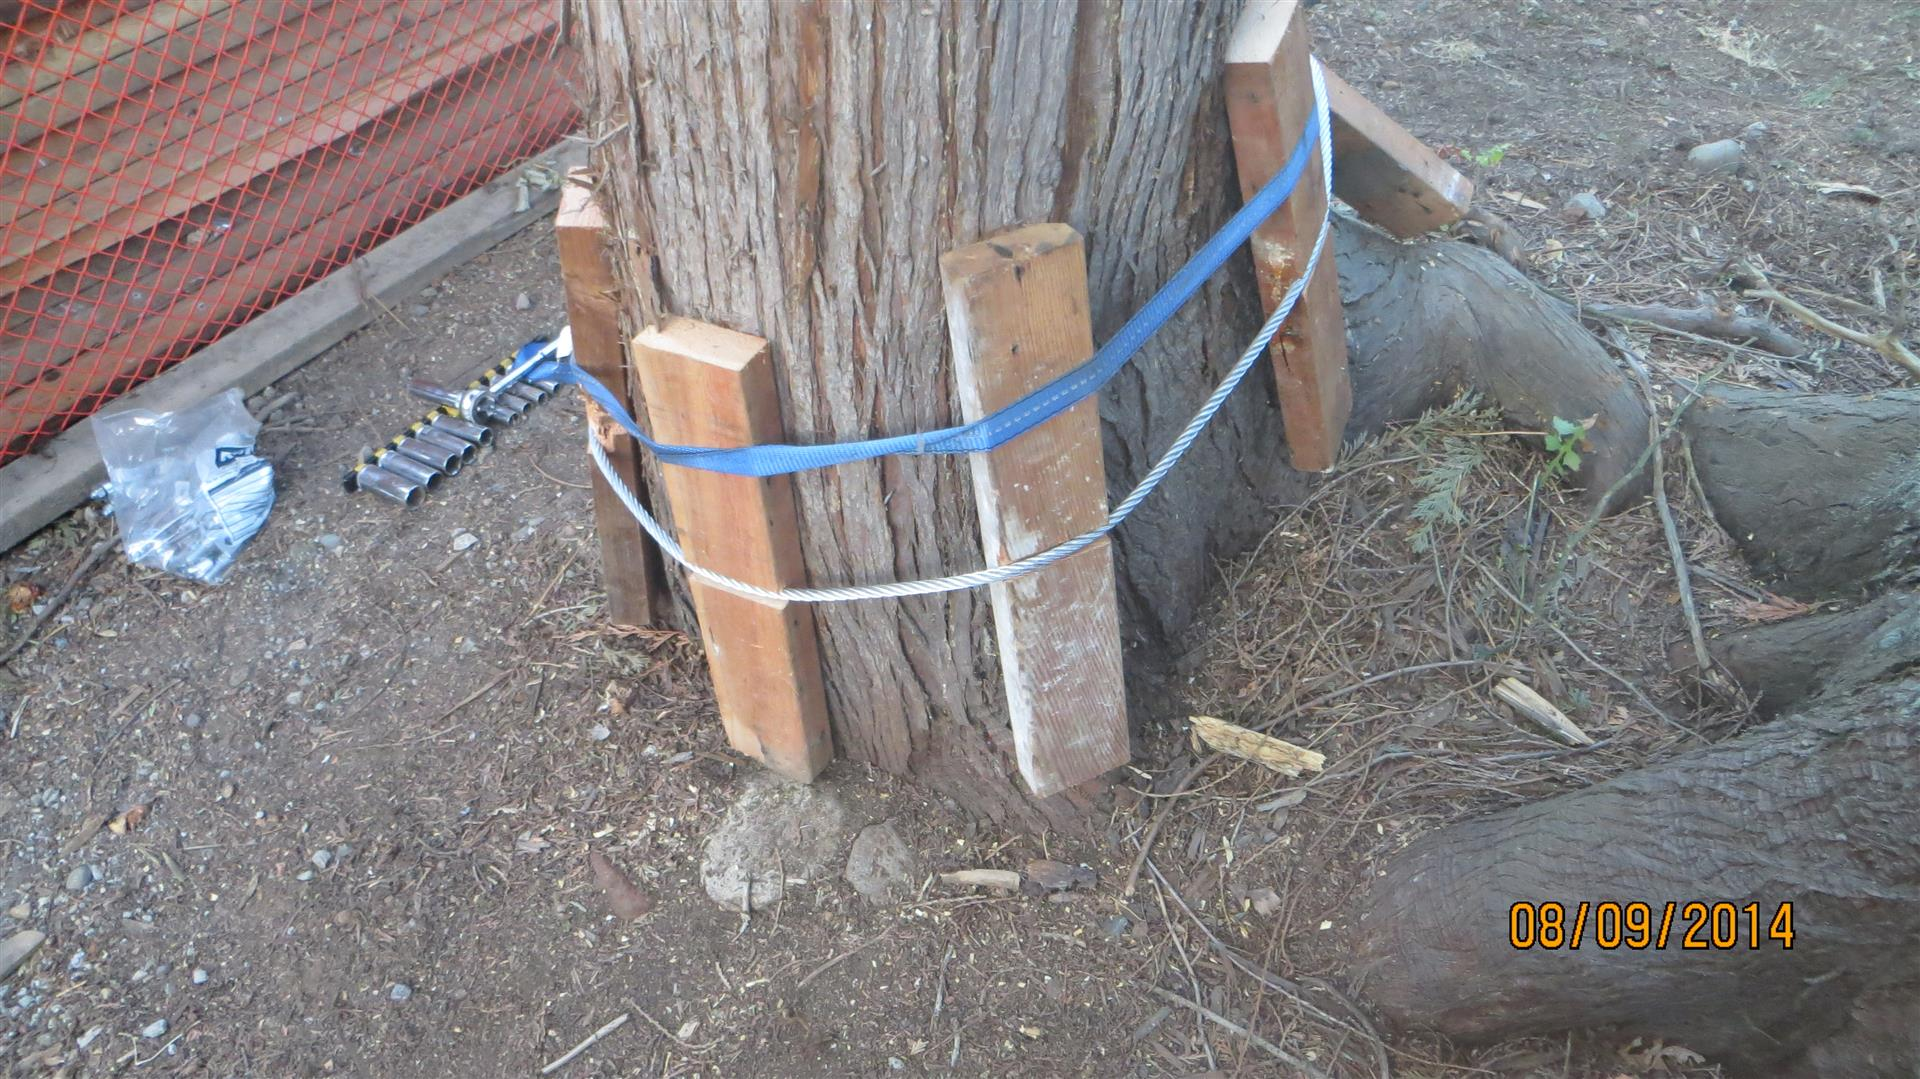 In several cases I wrapped a cable around the tree and protected the tree with wood blocks to distribute the load and prevent the cable from cutting into the bark.  I got this idea from the internet where people were installing zip-lines.